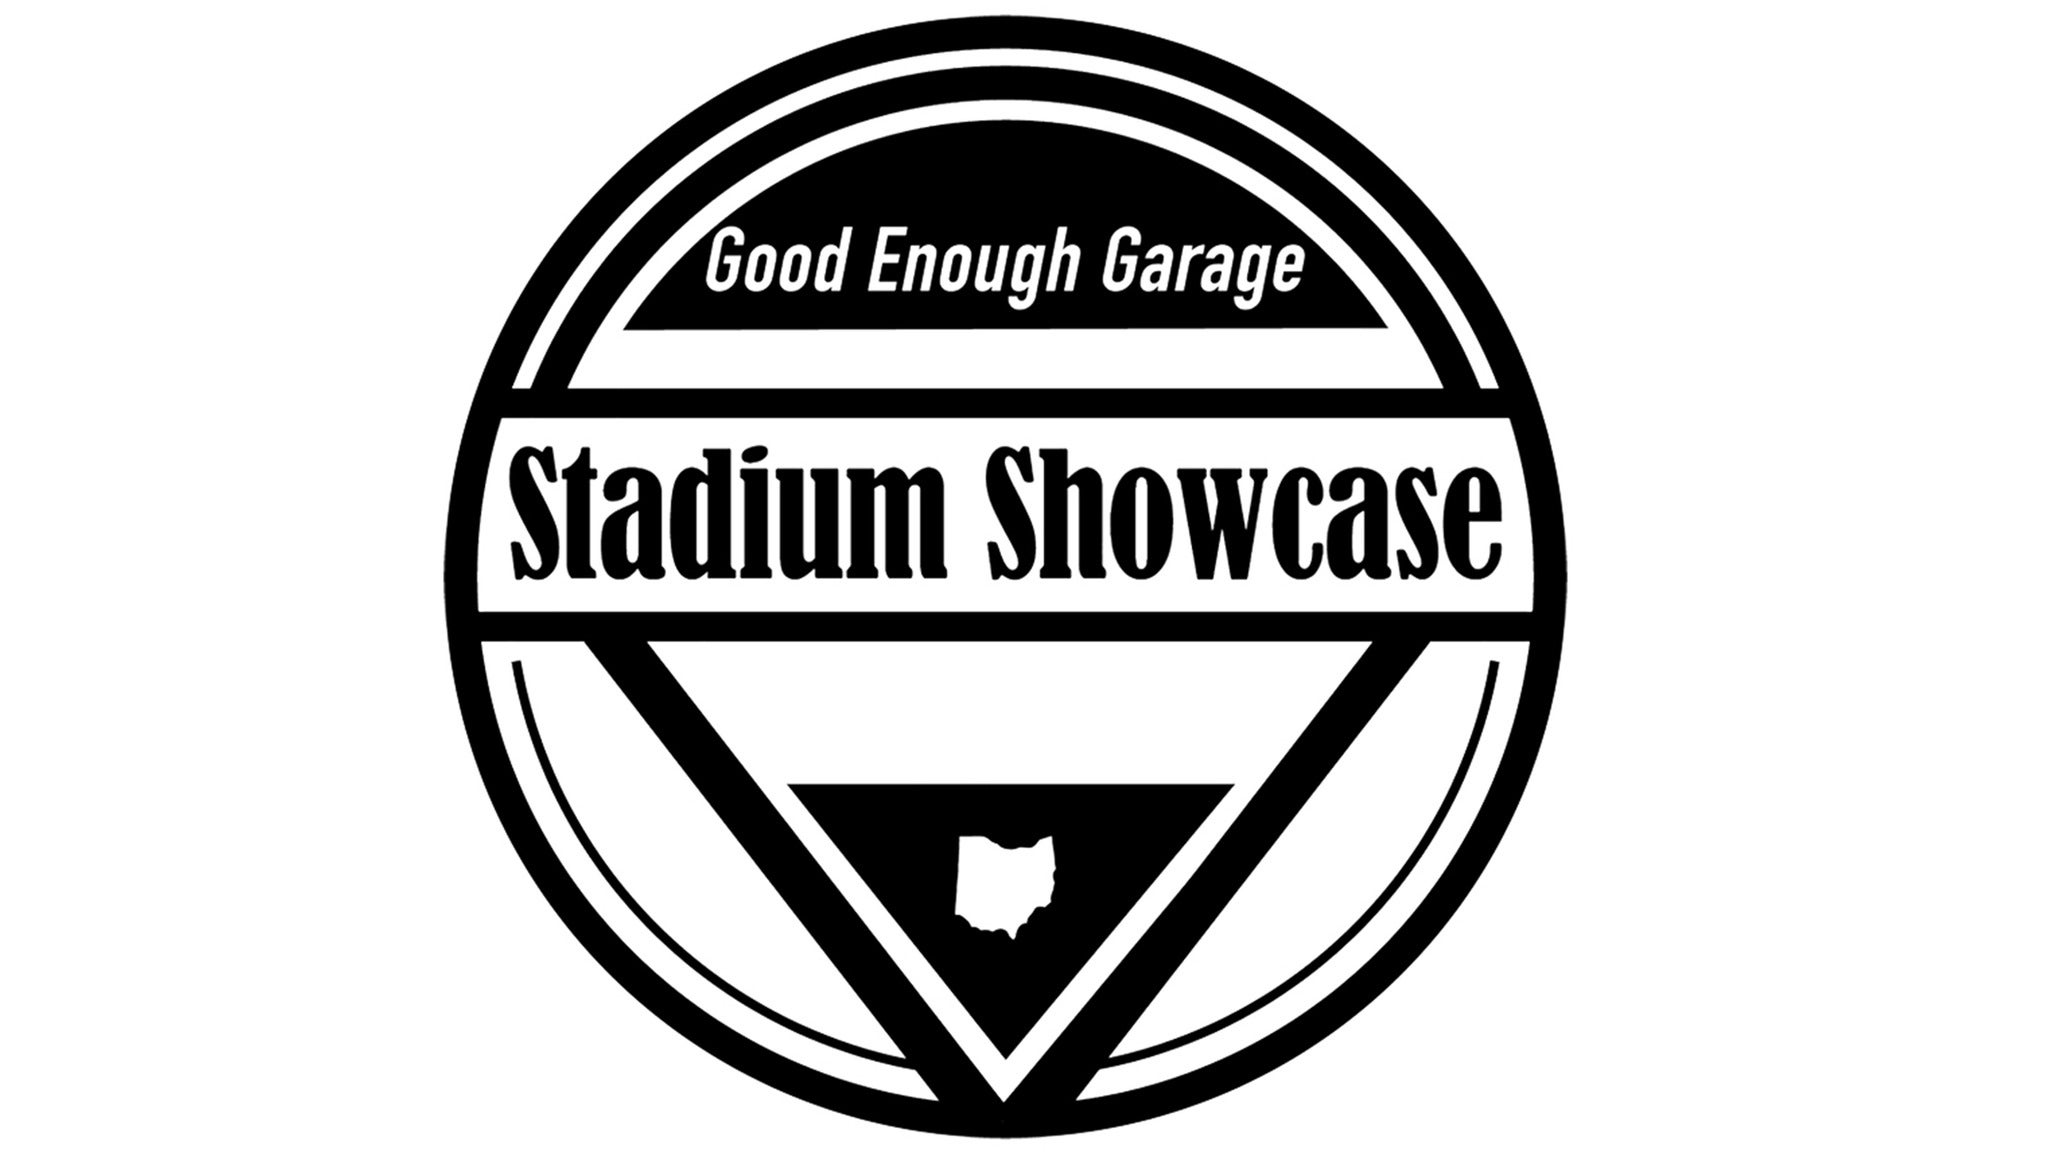 Stadium Showcase